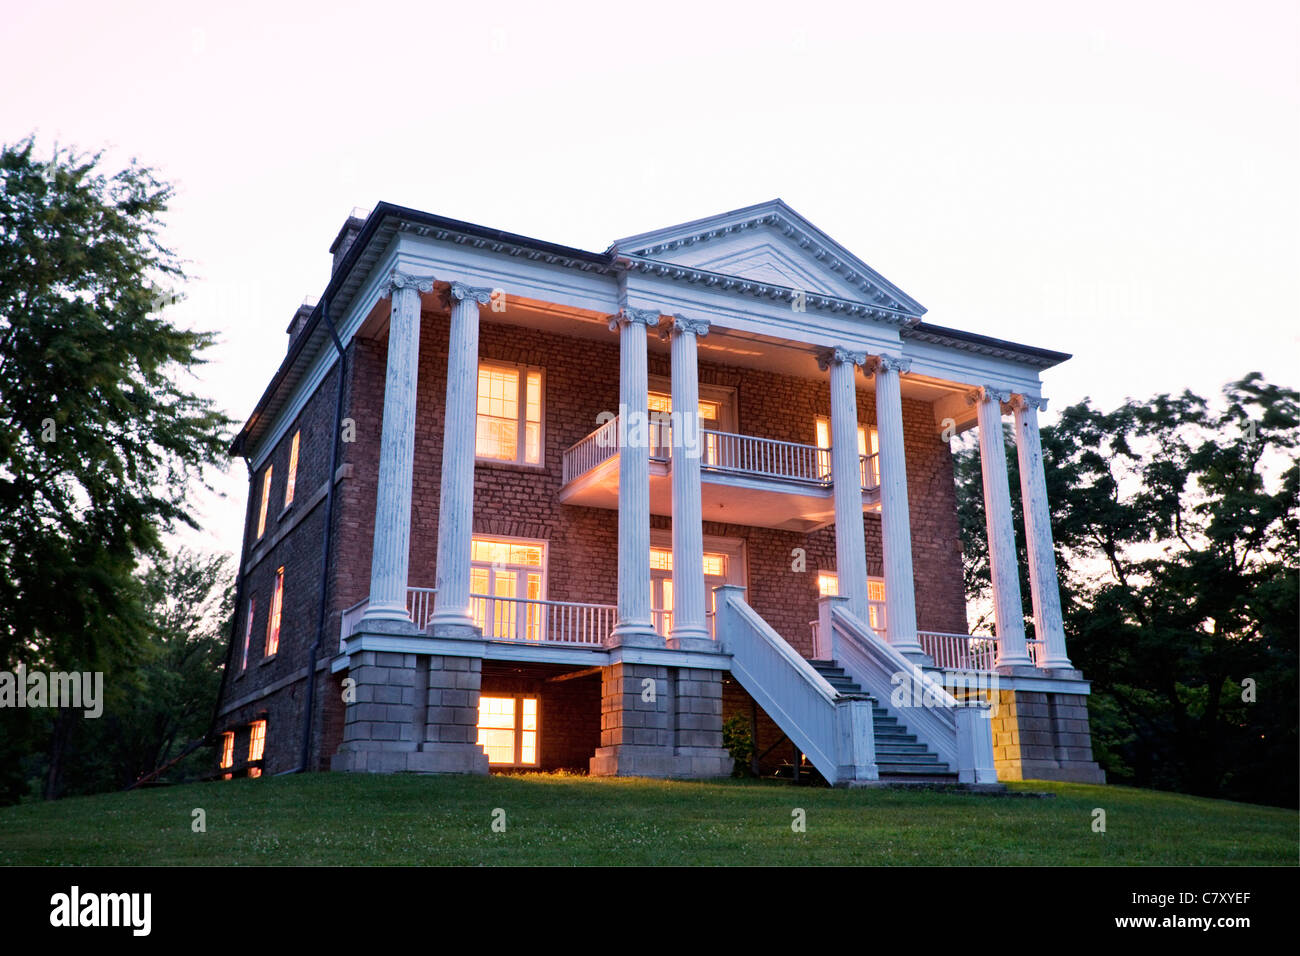 Canada,Ontario,Queenston, Willowbank is a Greek Revival house built in 1834 and designated as a National Historic - Stock Image